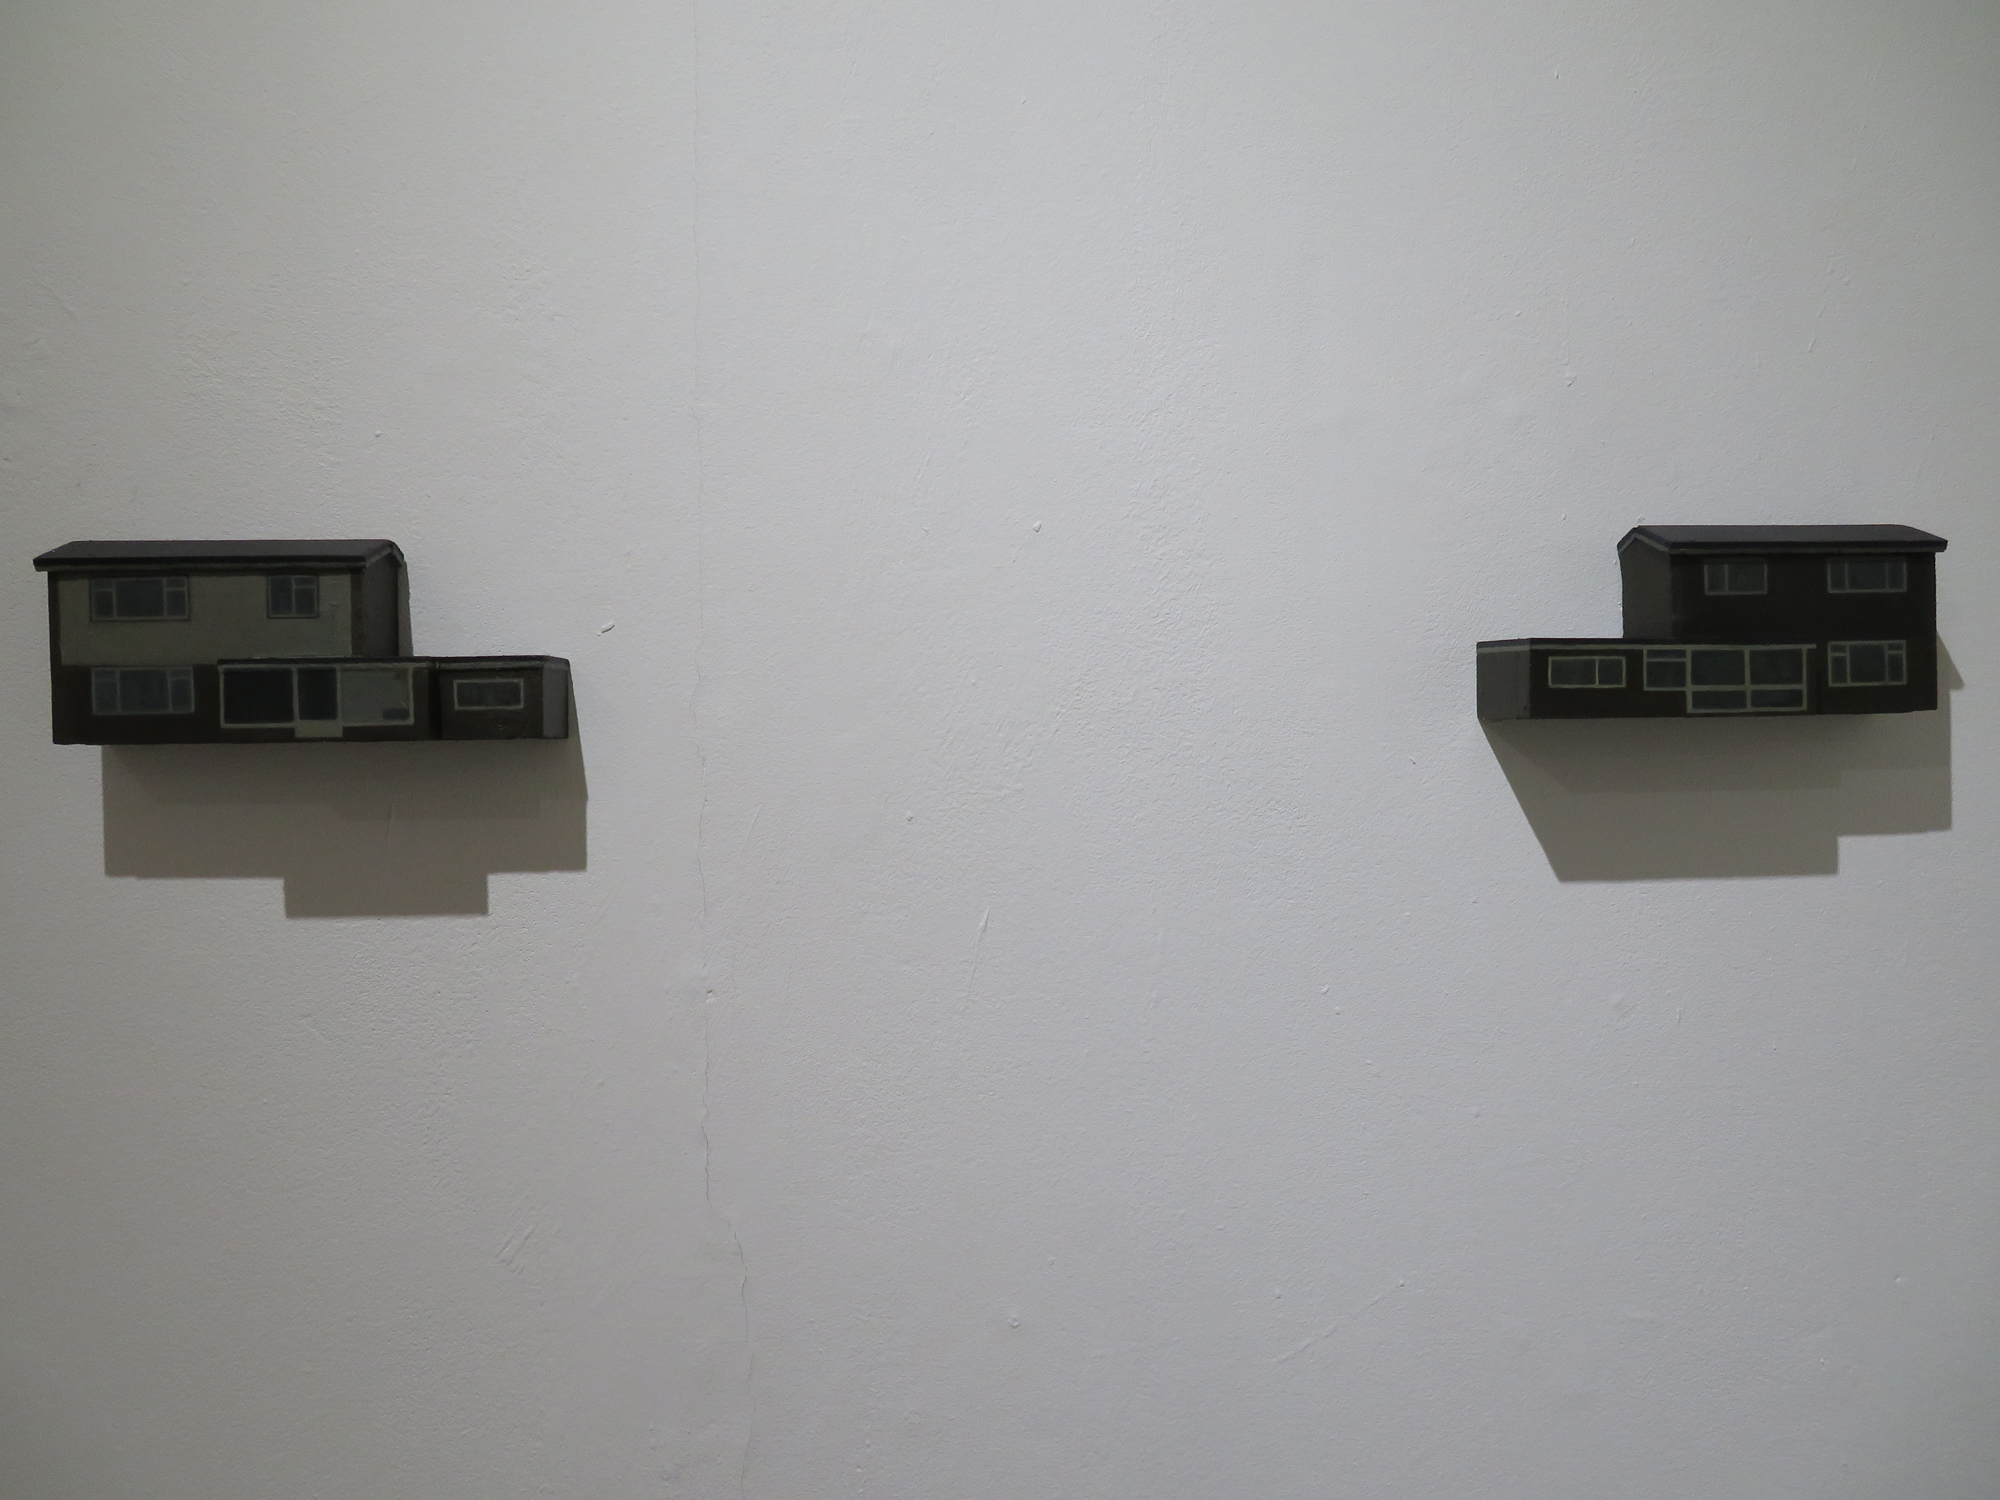 House no.12a & 12b (diptych)